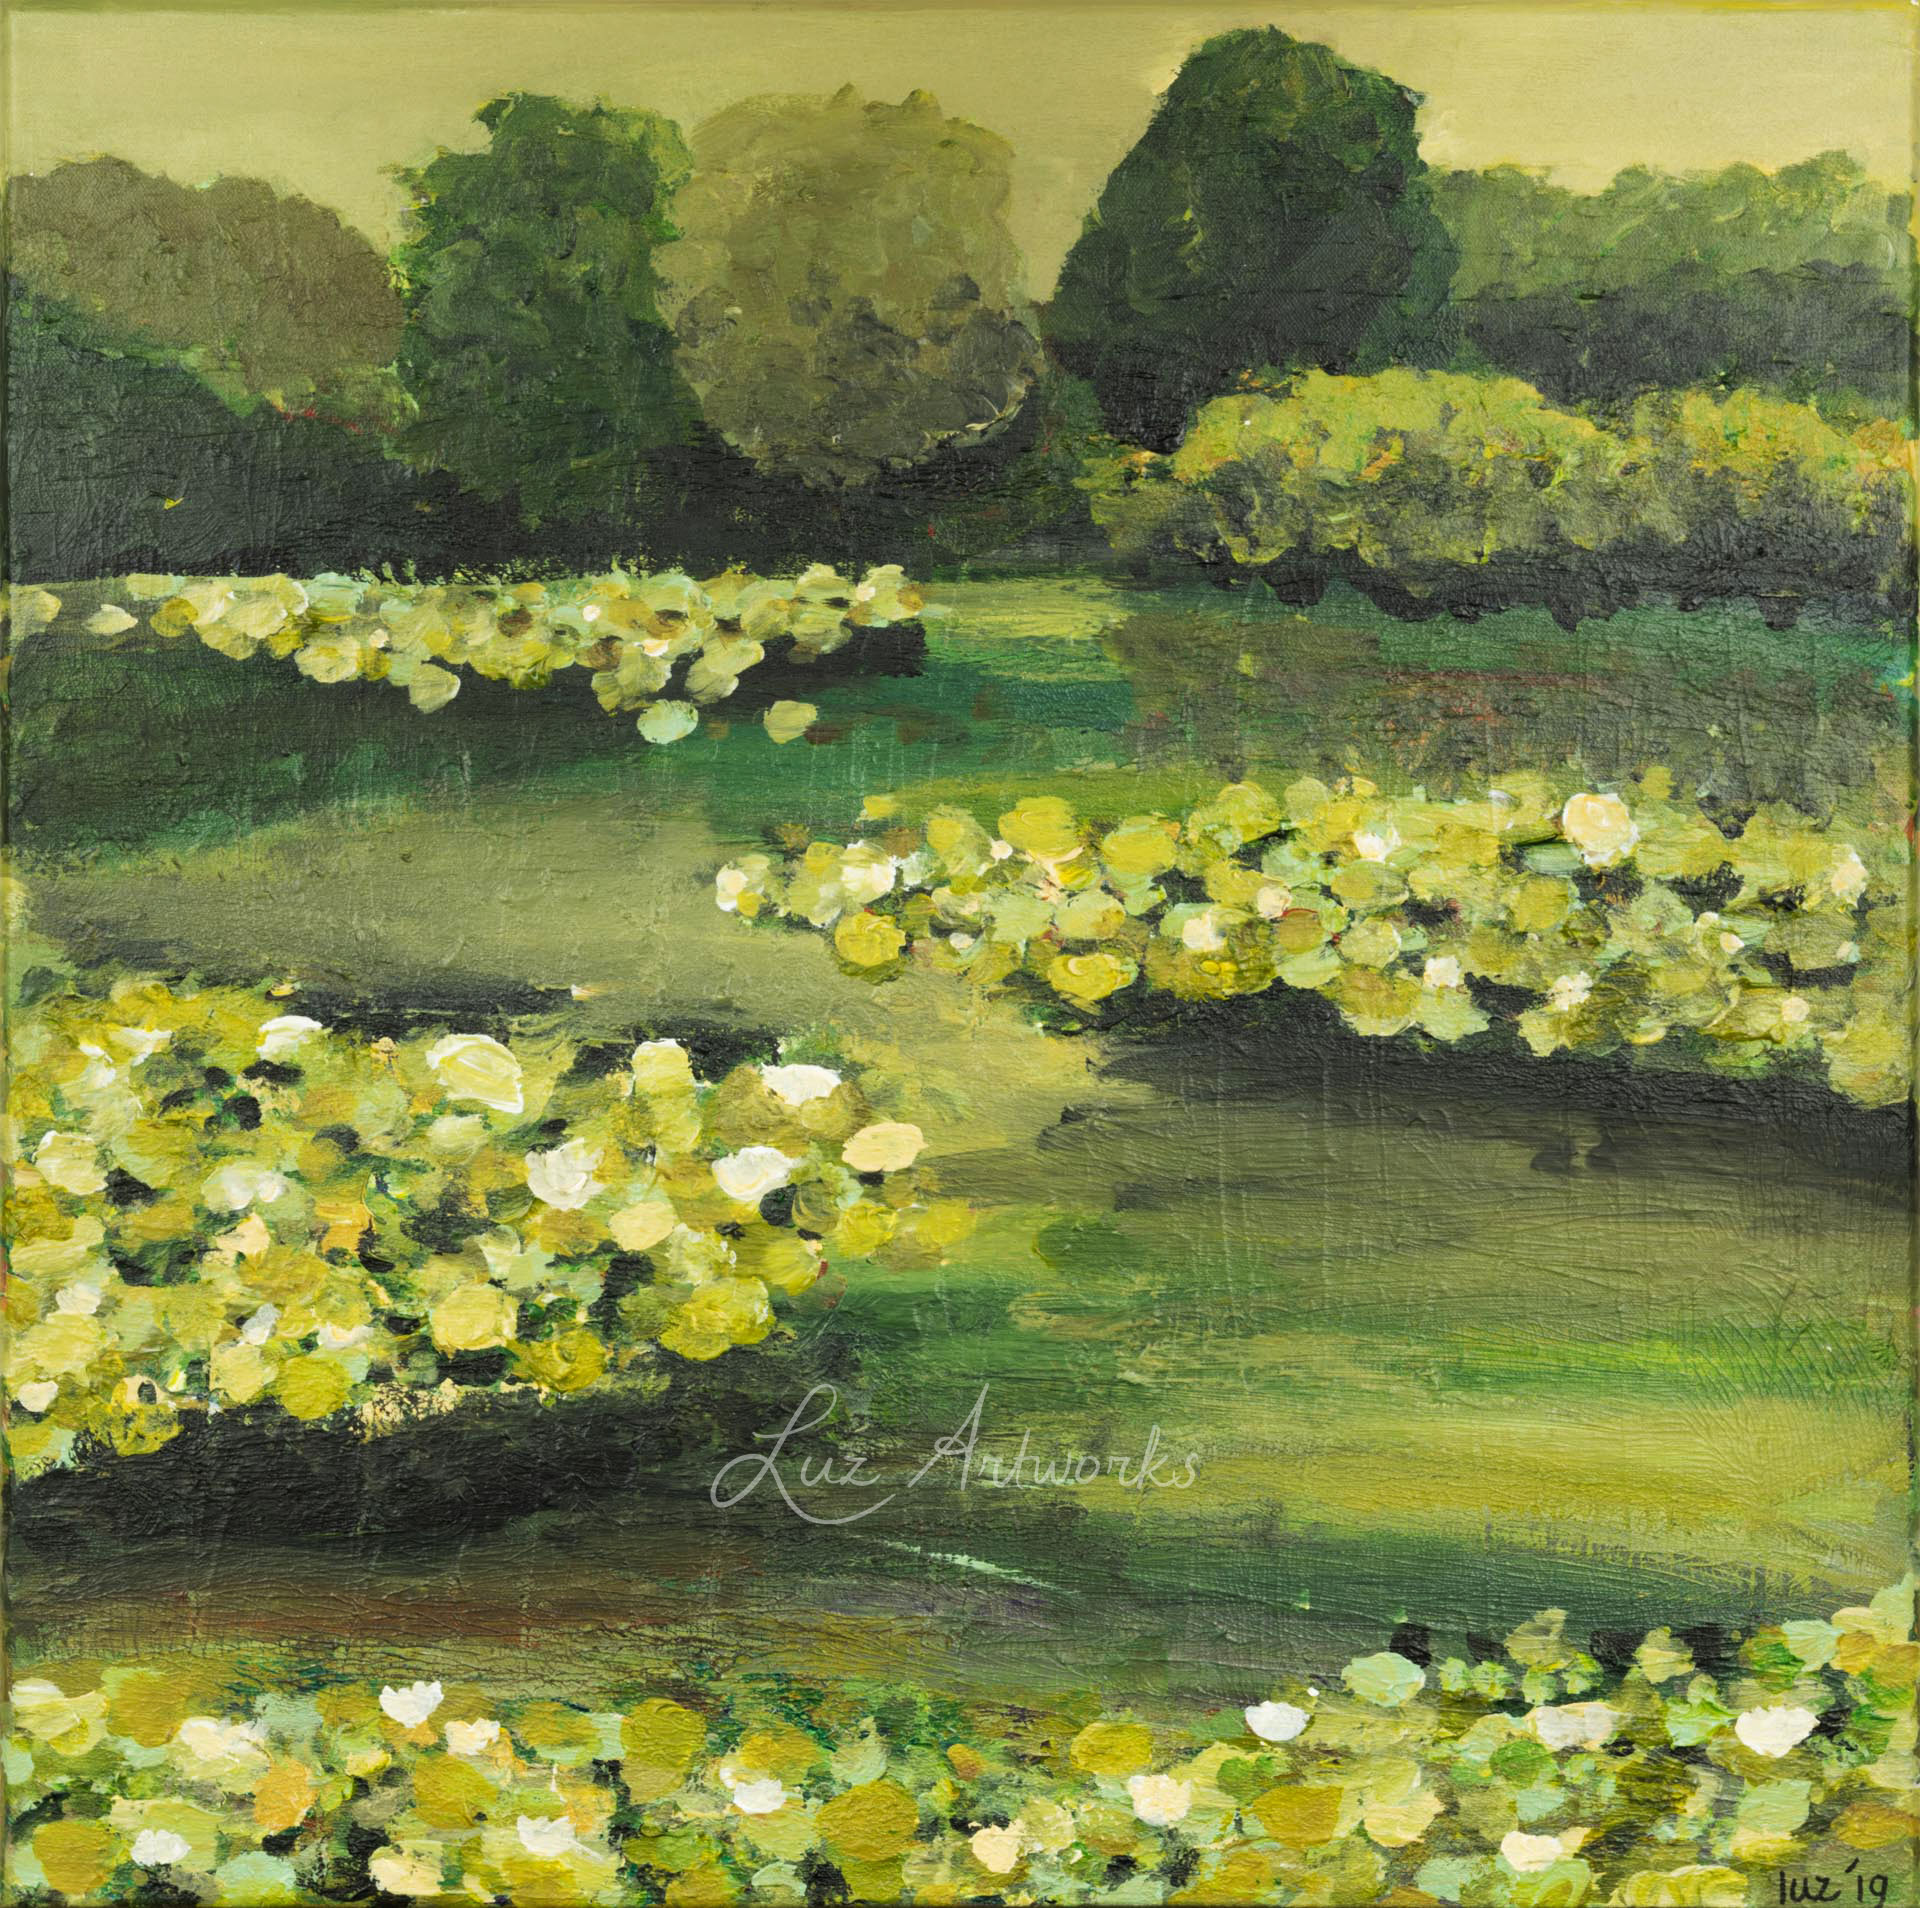 This image shows the painting Waterlilies by Luz / Marloes Bloedjes.